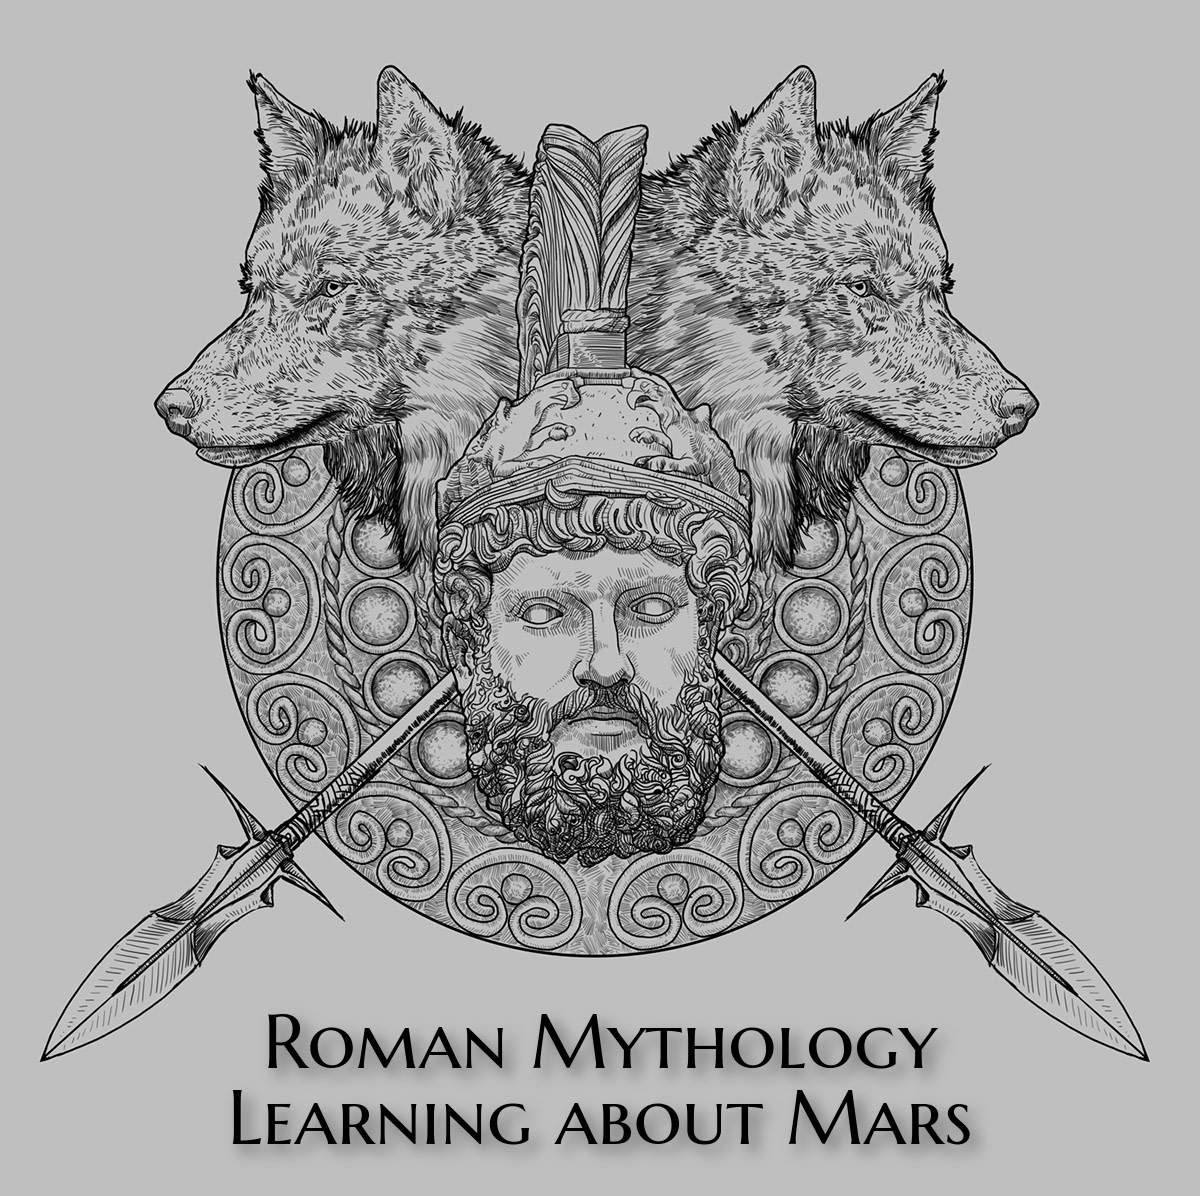 Animals important to Mars: the woodpecker, the bear, and the wolves. Wolves are also recurring animals in several Roman myths, including the founding of Rome.